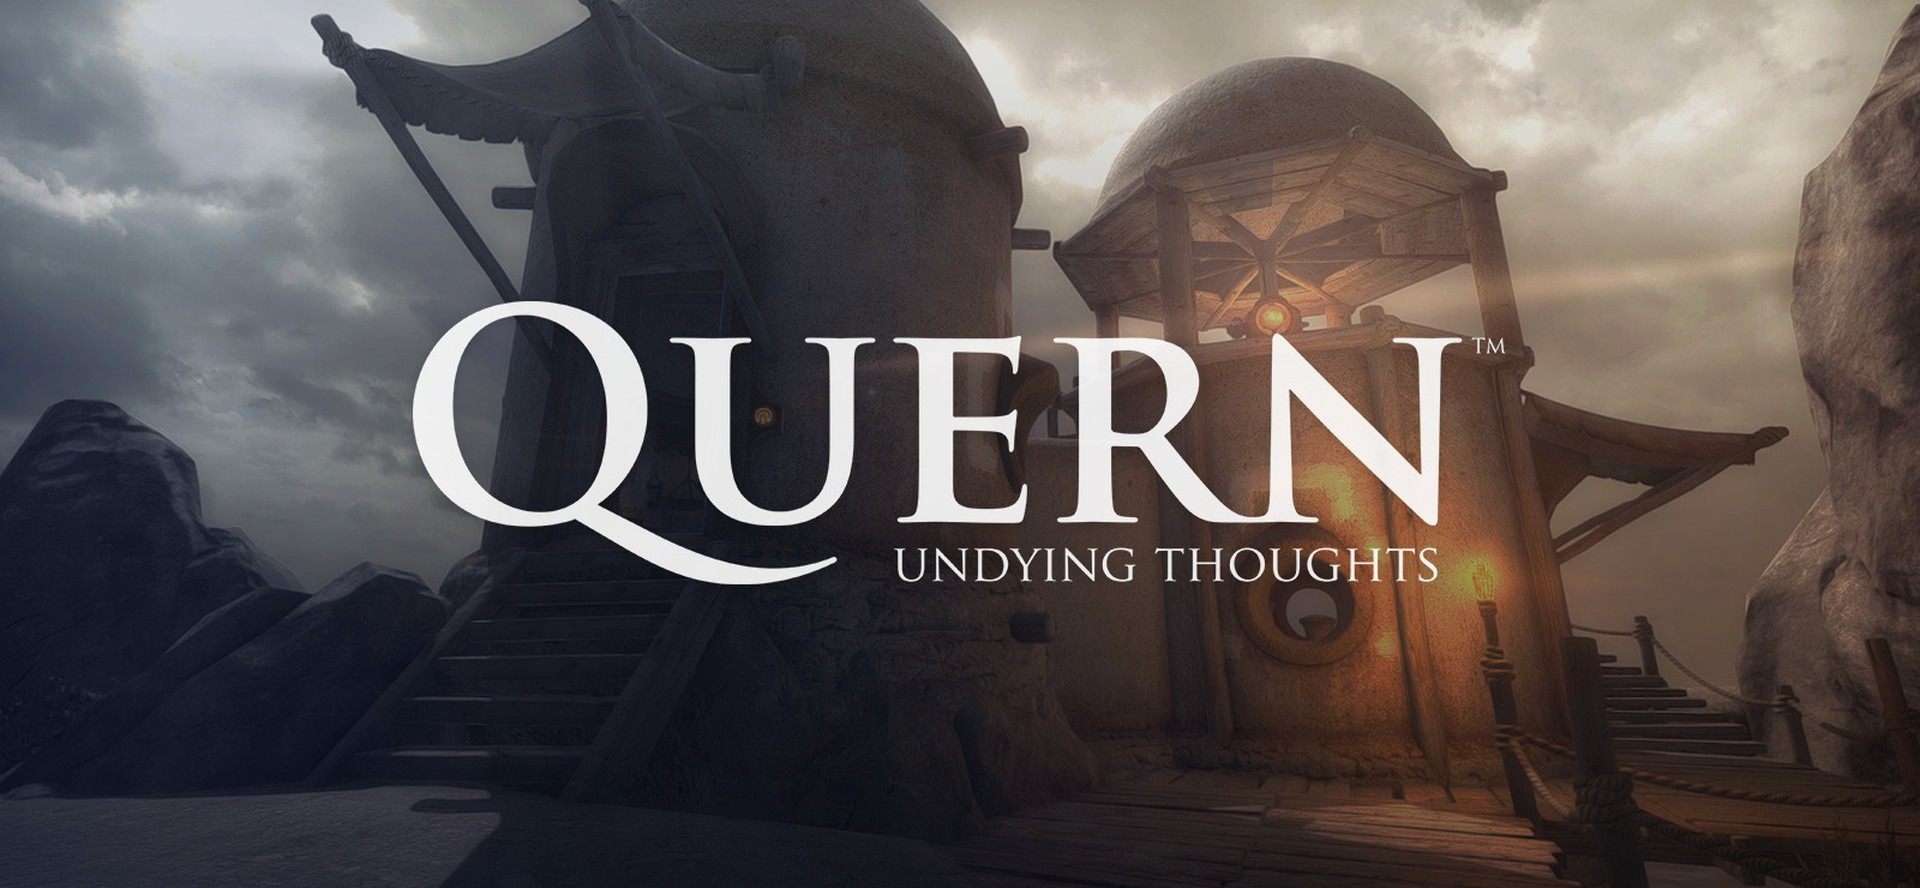 Quern - Undying Thoughts Video